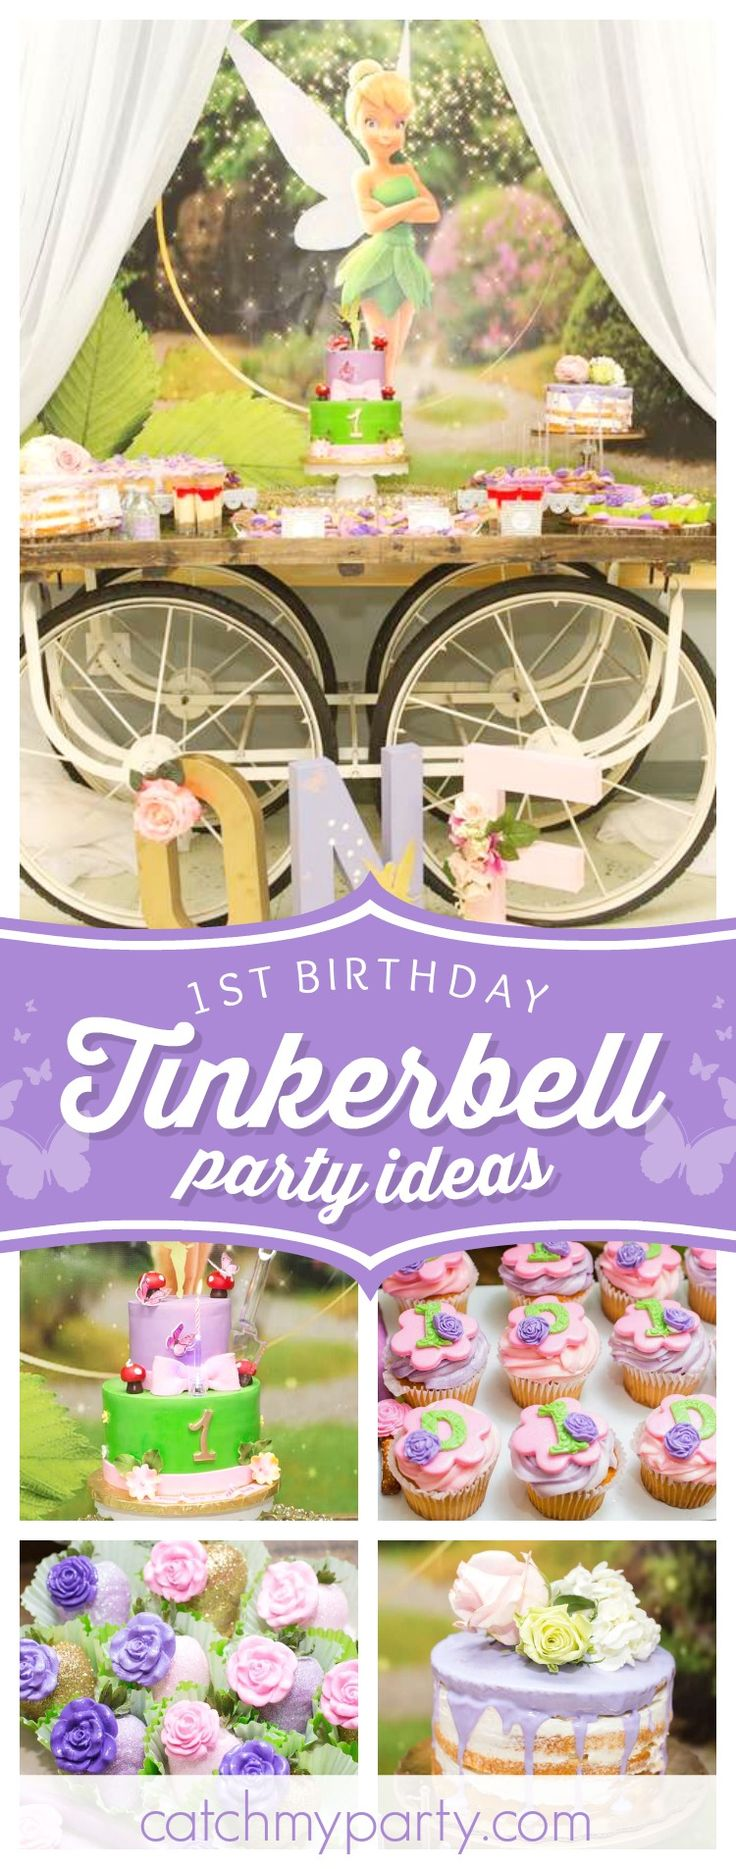 Don't miss this stunning Tinkerbell 1st birthday party! The dessert table is incredible!! See more party ideas and share yours at CatchMyParty.com #tinkerbell #1stbirthday